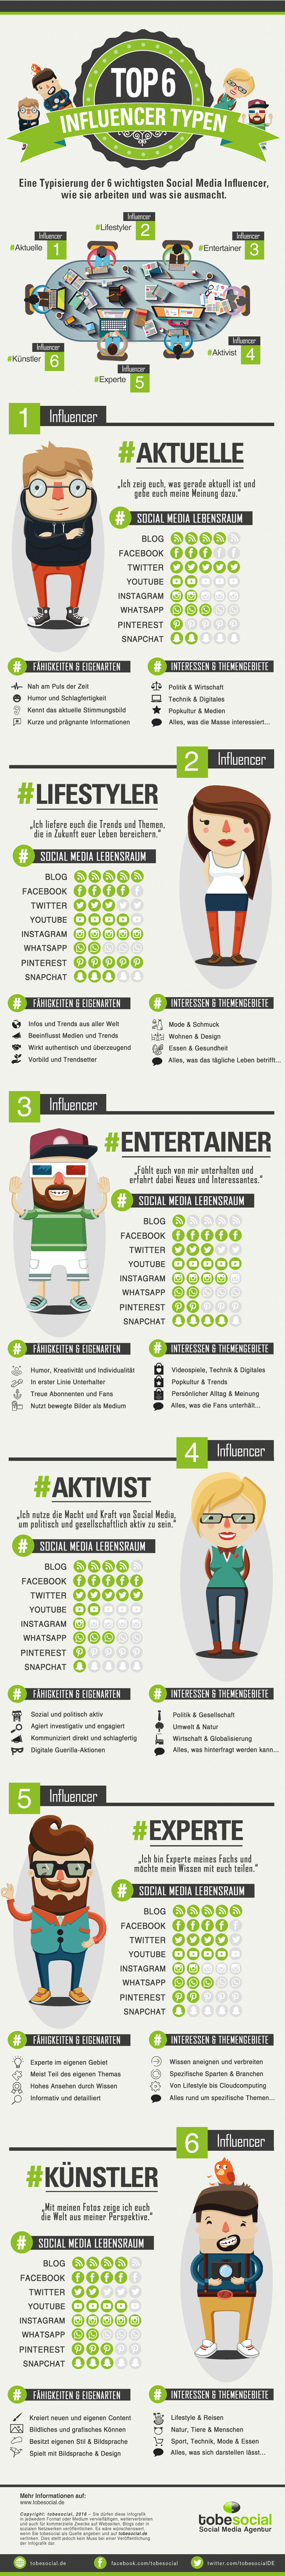 Infografik-influencer-marketing-social-media